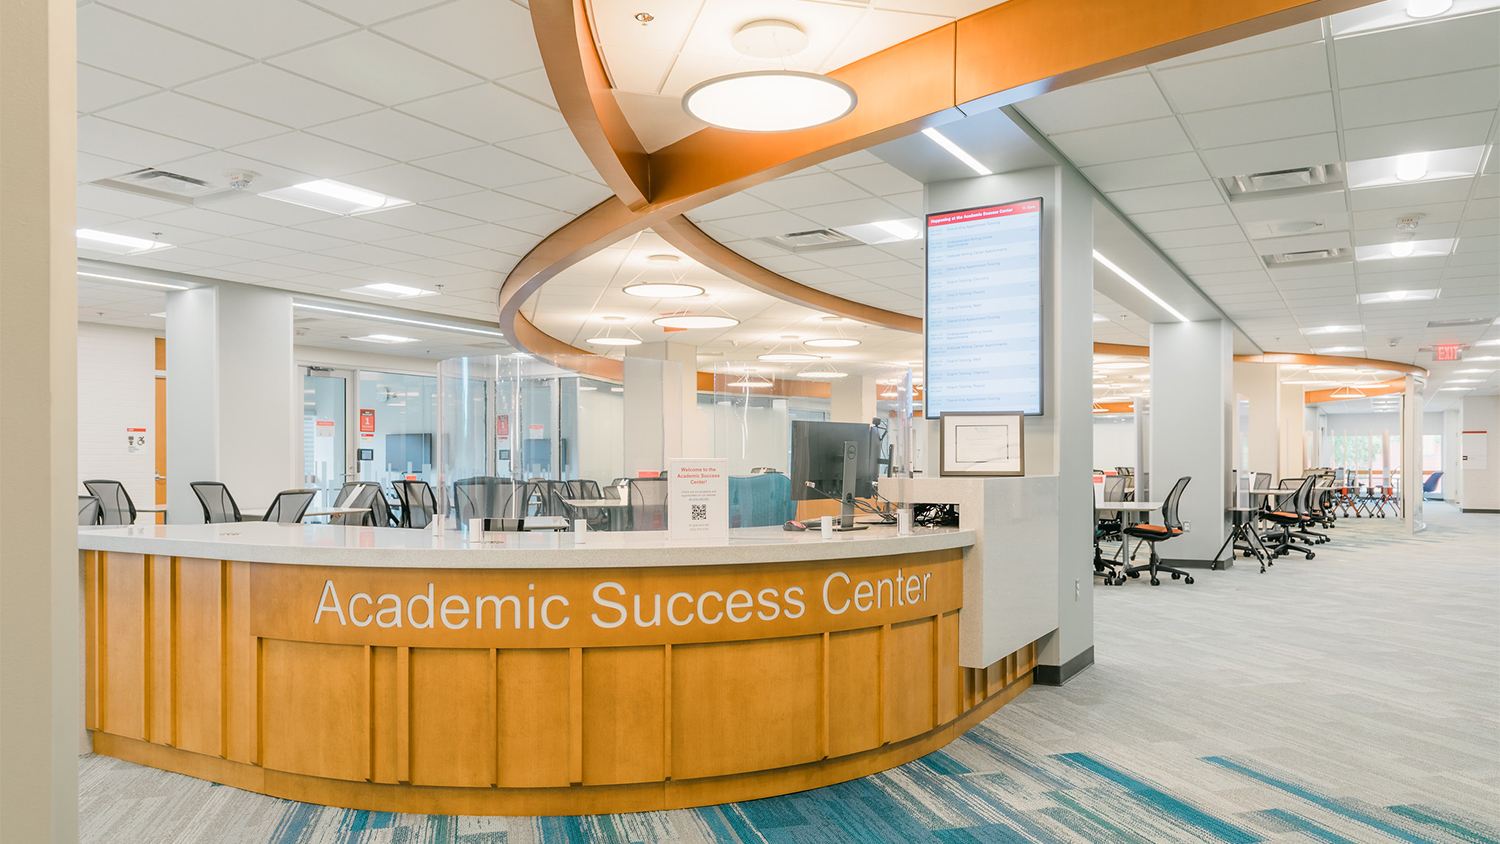 The main desk of the Academic Success Center